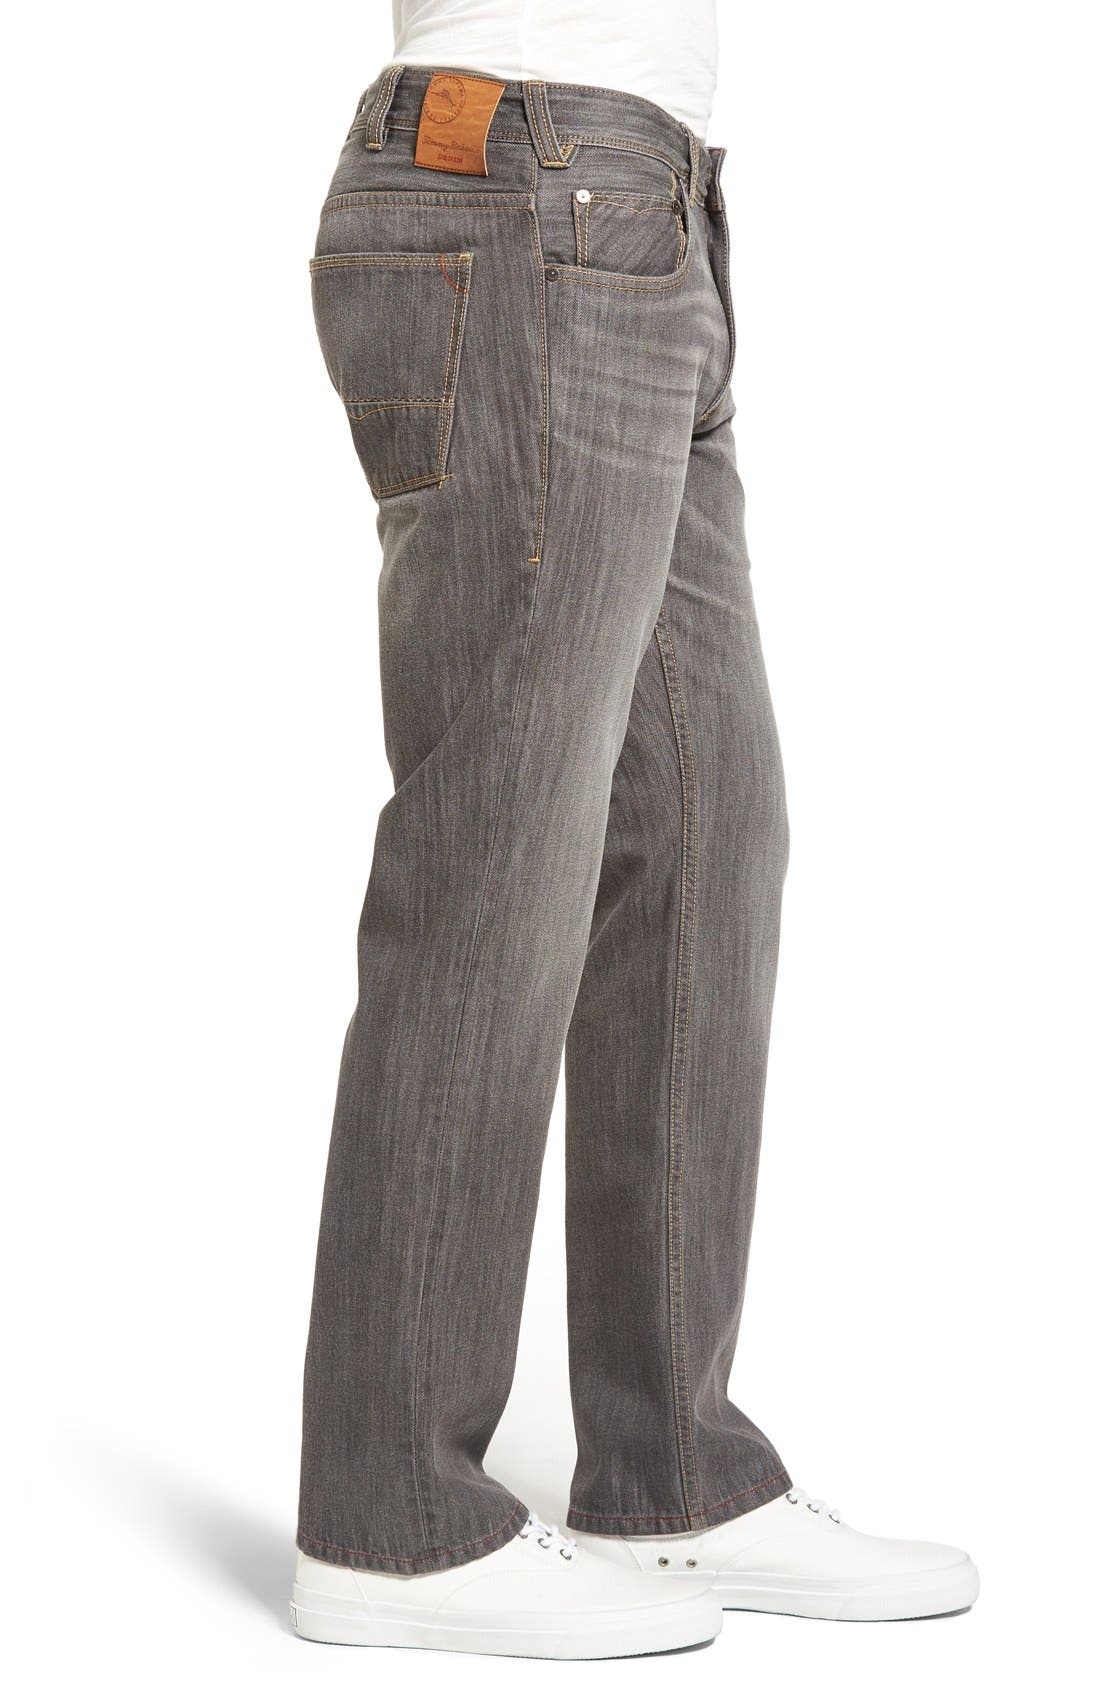 Barbados Bootcut Jeans,                             Alternate thumbnail 2, color,                             050